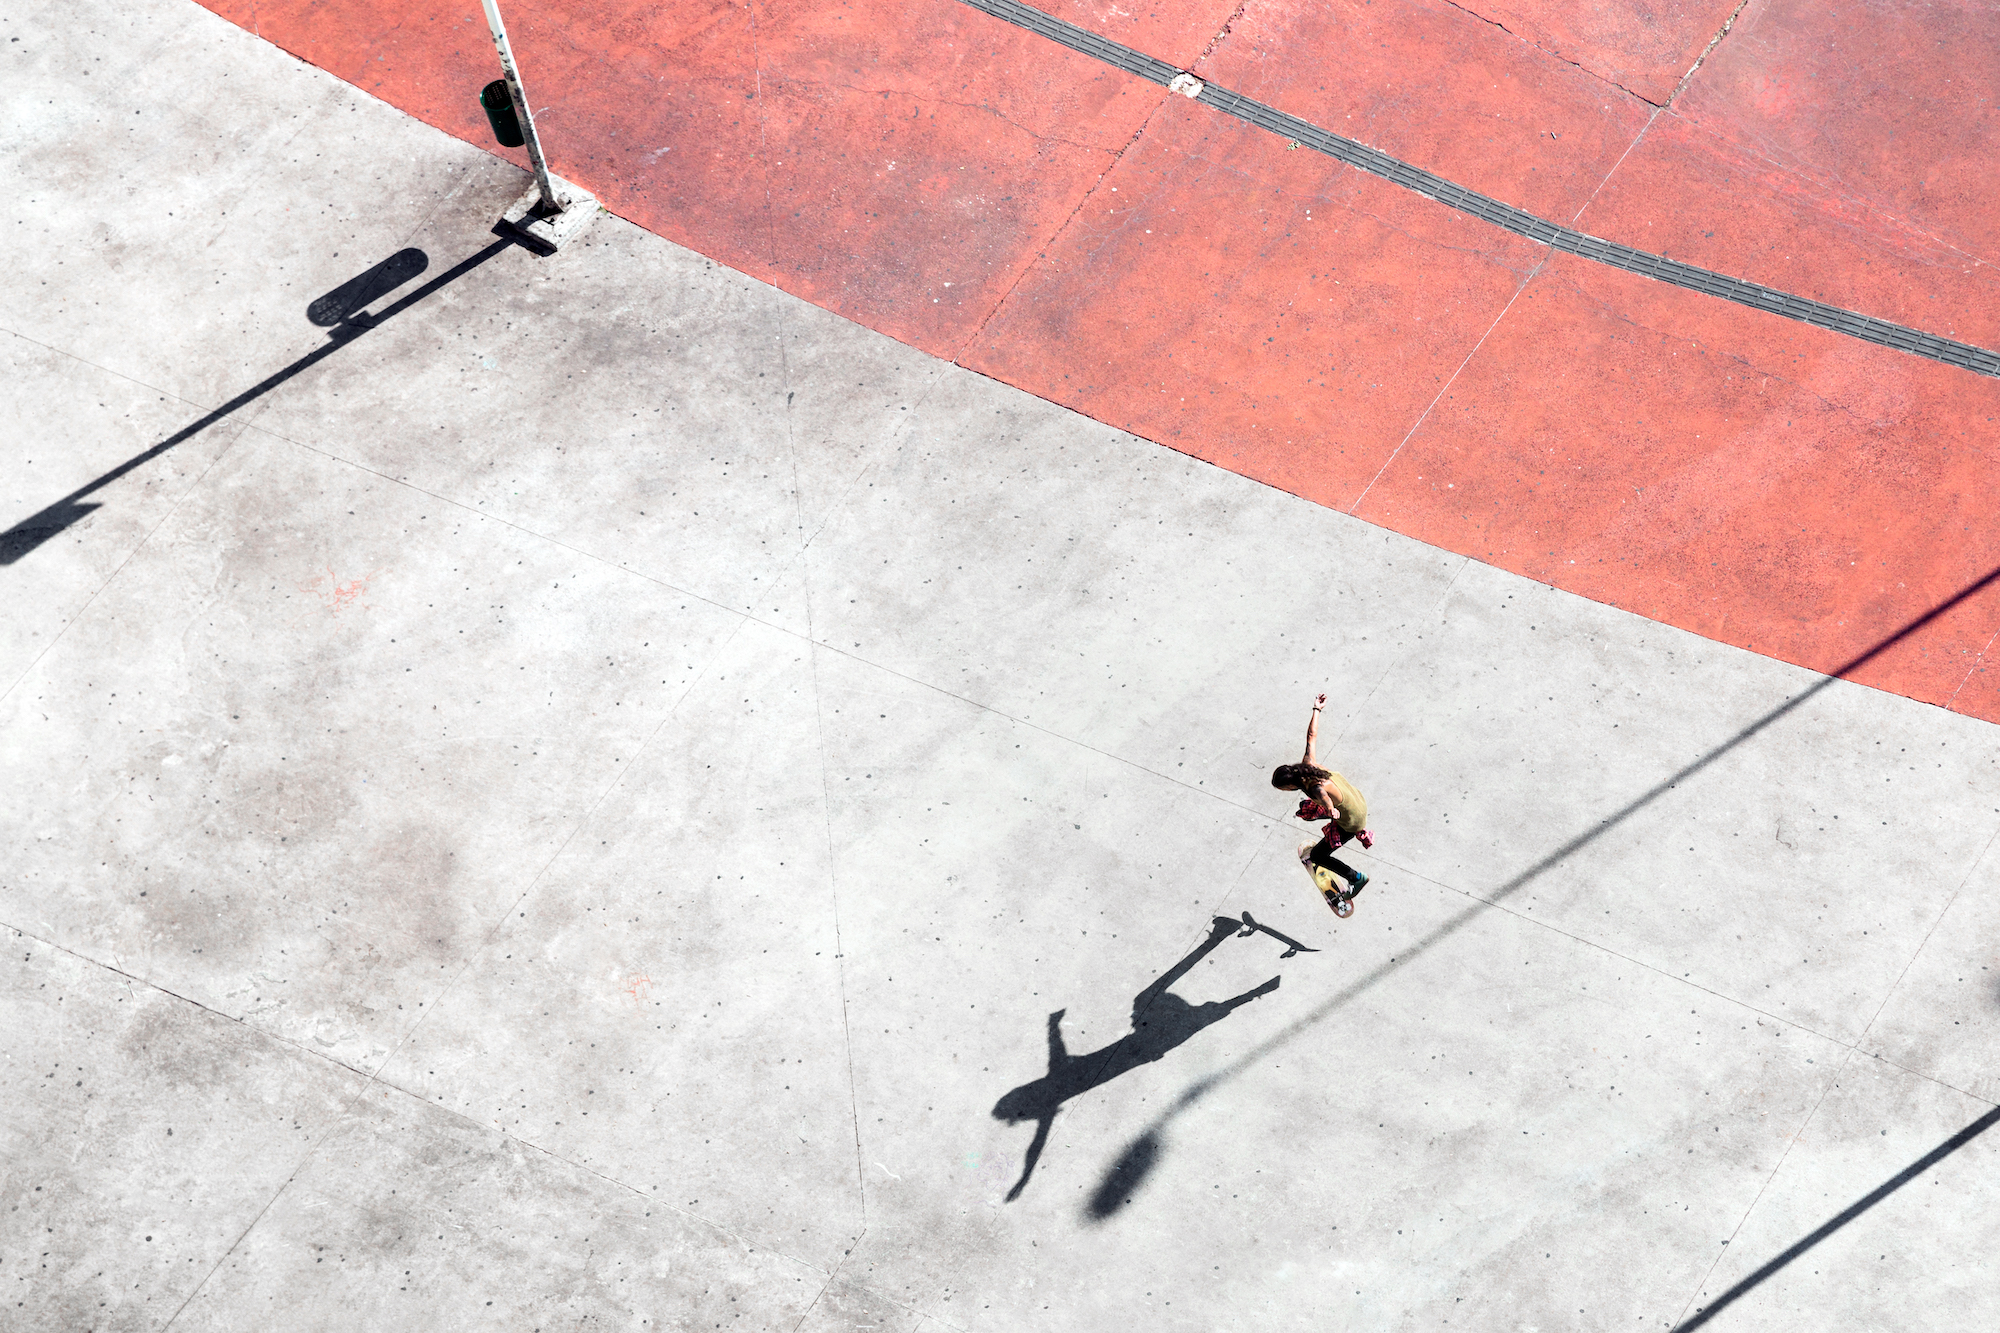 Shadow of a Brazilian skater from Sao Paulo